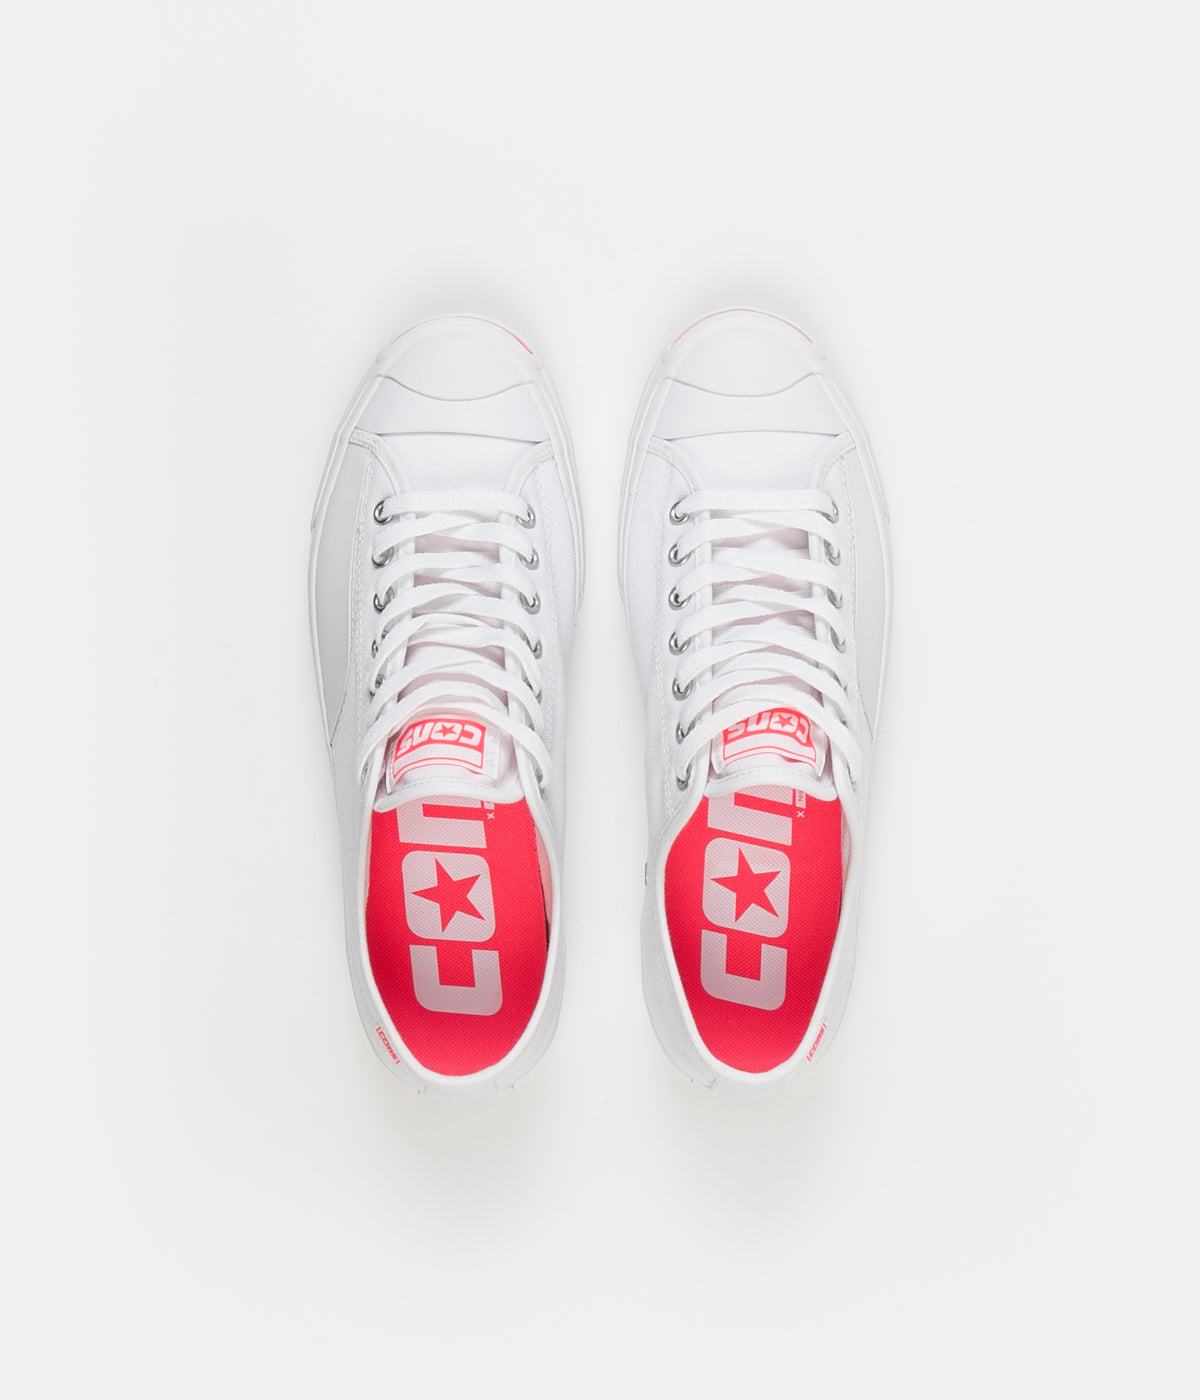 Converse Jack Purcell Pro Op Ox Shoes White Racer Pink